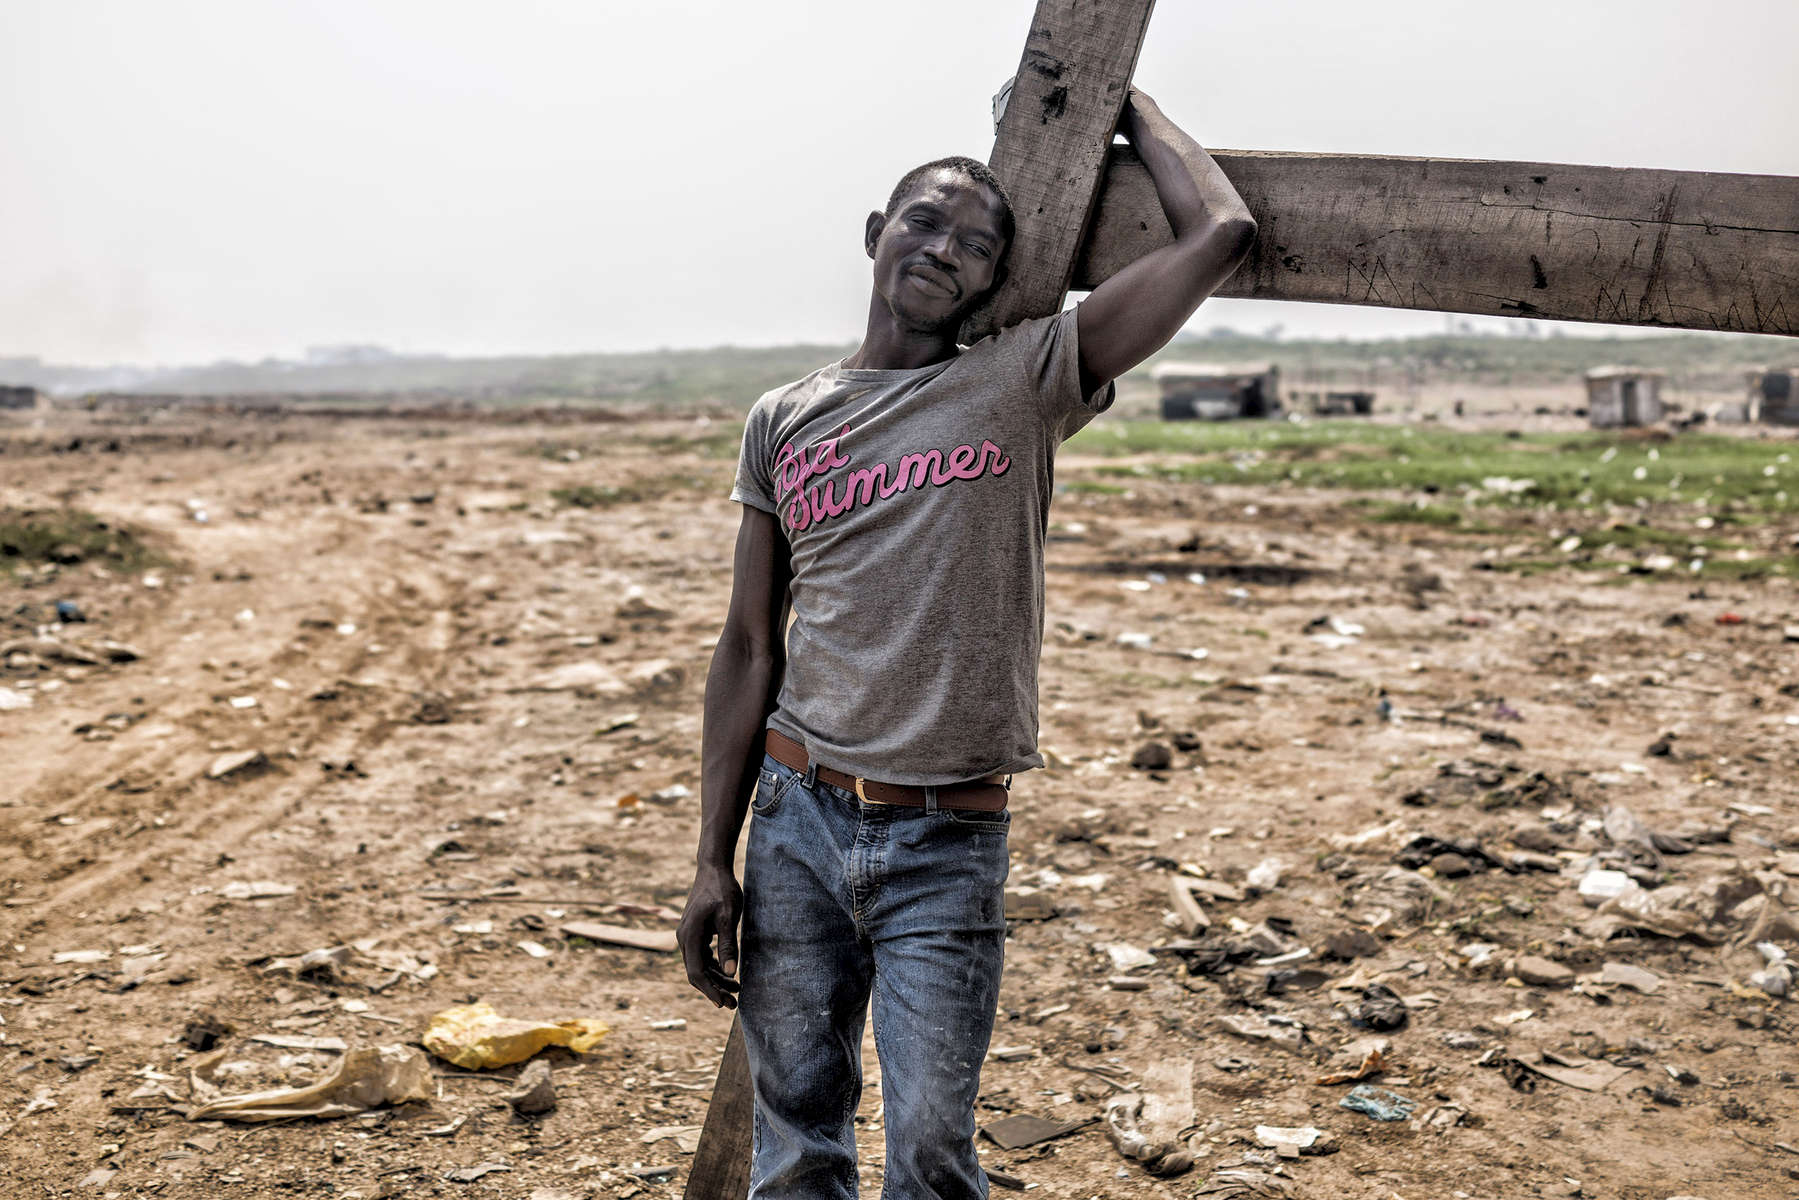 Hassan Hussein - who has lived in the Agbogbloshie dump for 14 years - leans on a small wooden housing frame that litters the dump site. The Agbogbloshie dump's burning fields - where young men - almost all internal migrants from Ghana's northern Tamale region - toil in toxic smoke, burning down manufactured parts into their basic copper components hoping to make a slim income to feed themselves each day.